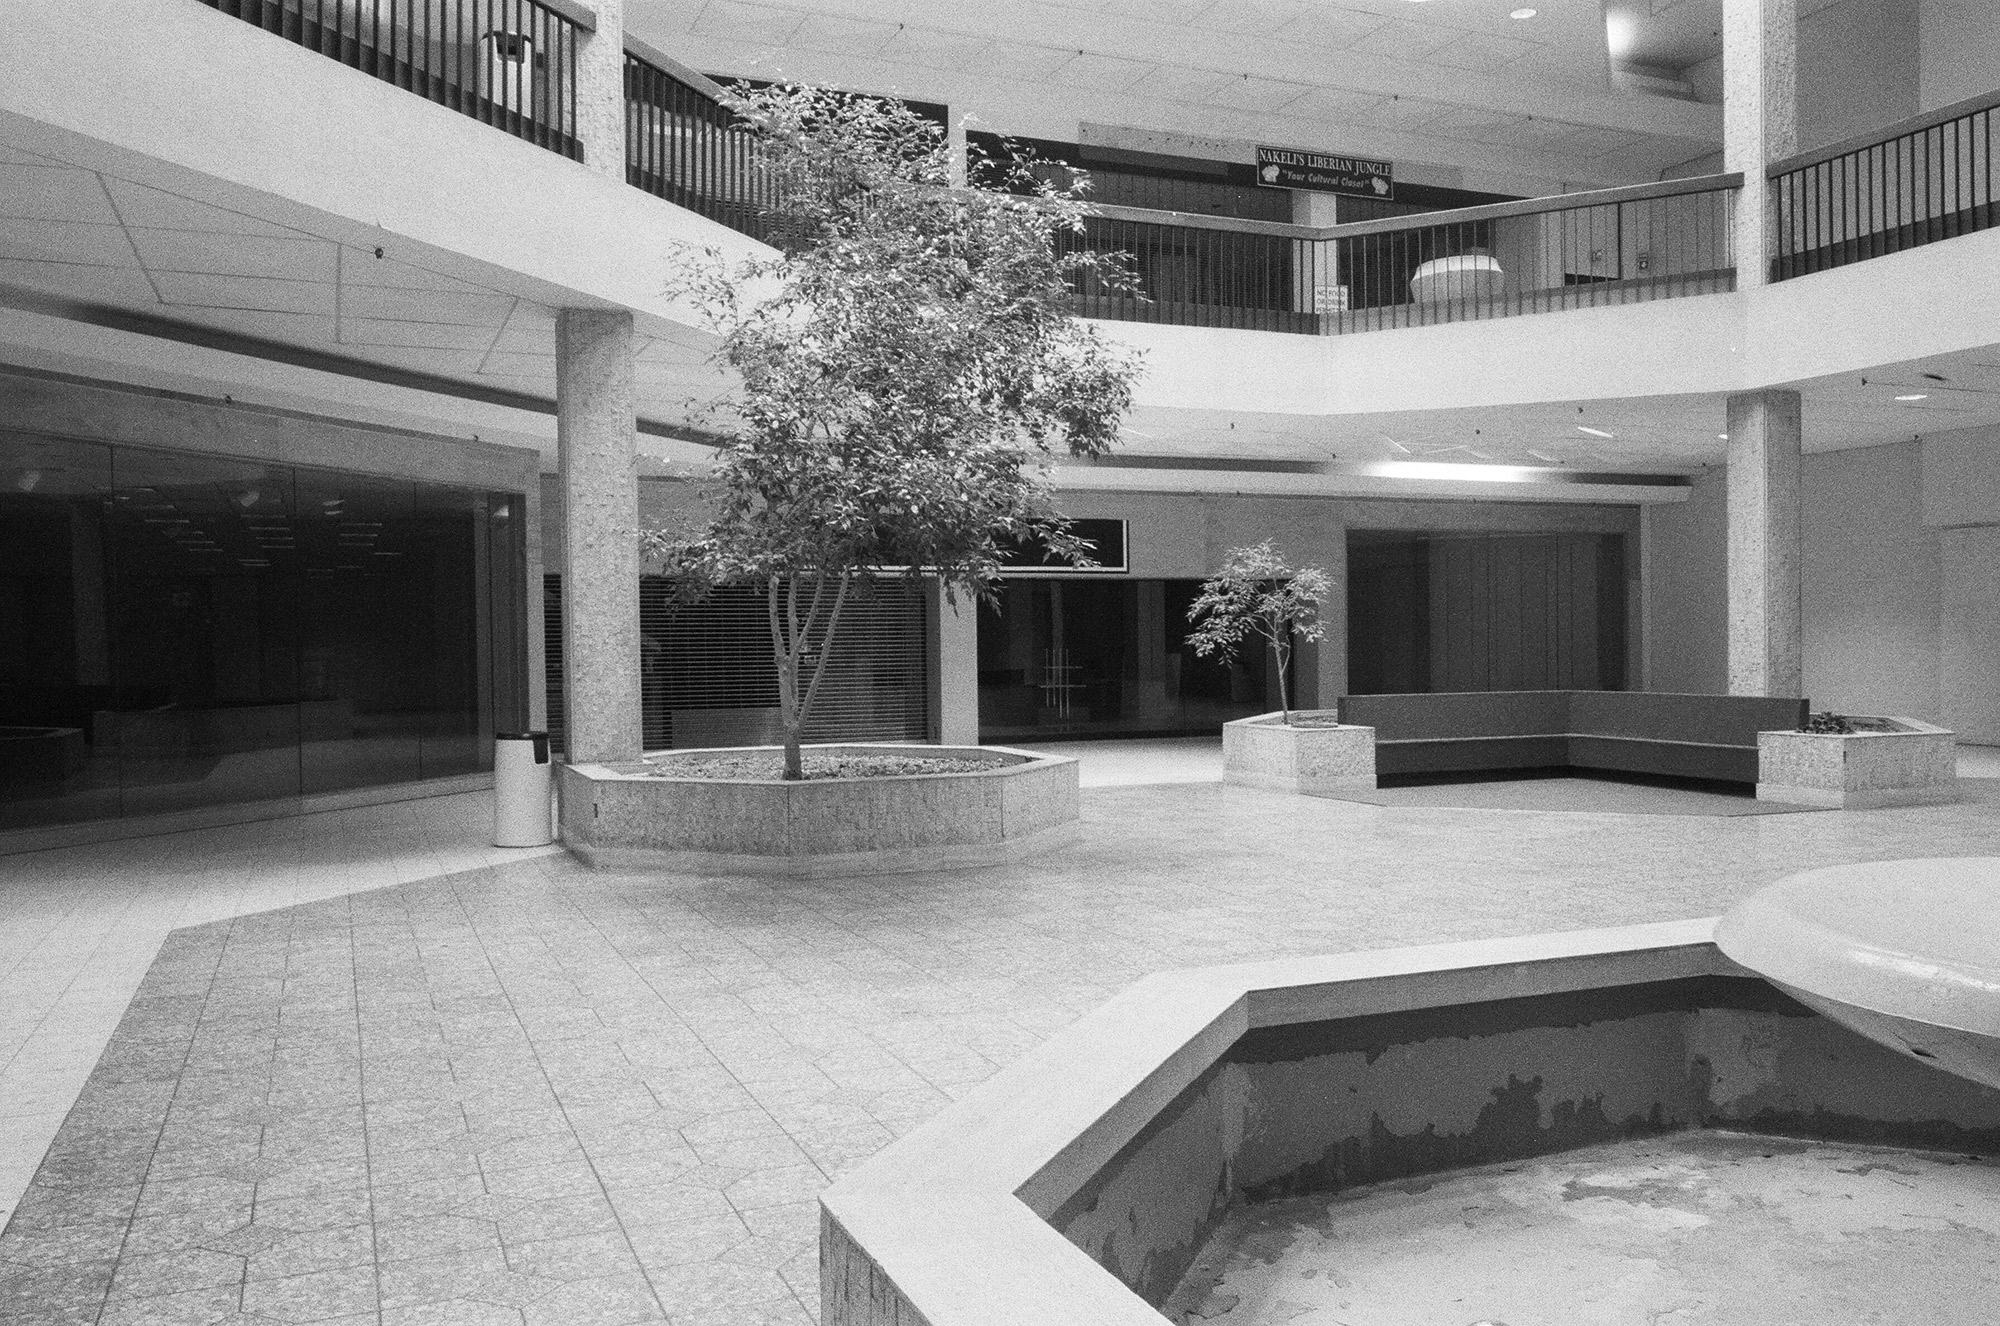 Randall Park Mall (View of Fountain, Seating Area), North Randall, OH, Est. 1976, Demo. 2014    2009   Analog slide shown via slide projection,35mm slide, dual projection with dissolve unit  Dimensions variable   American Passages, 2009–